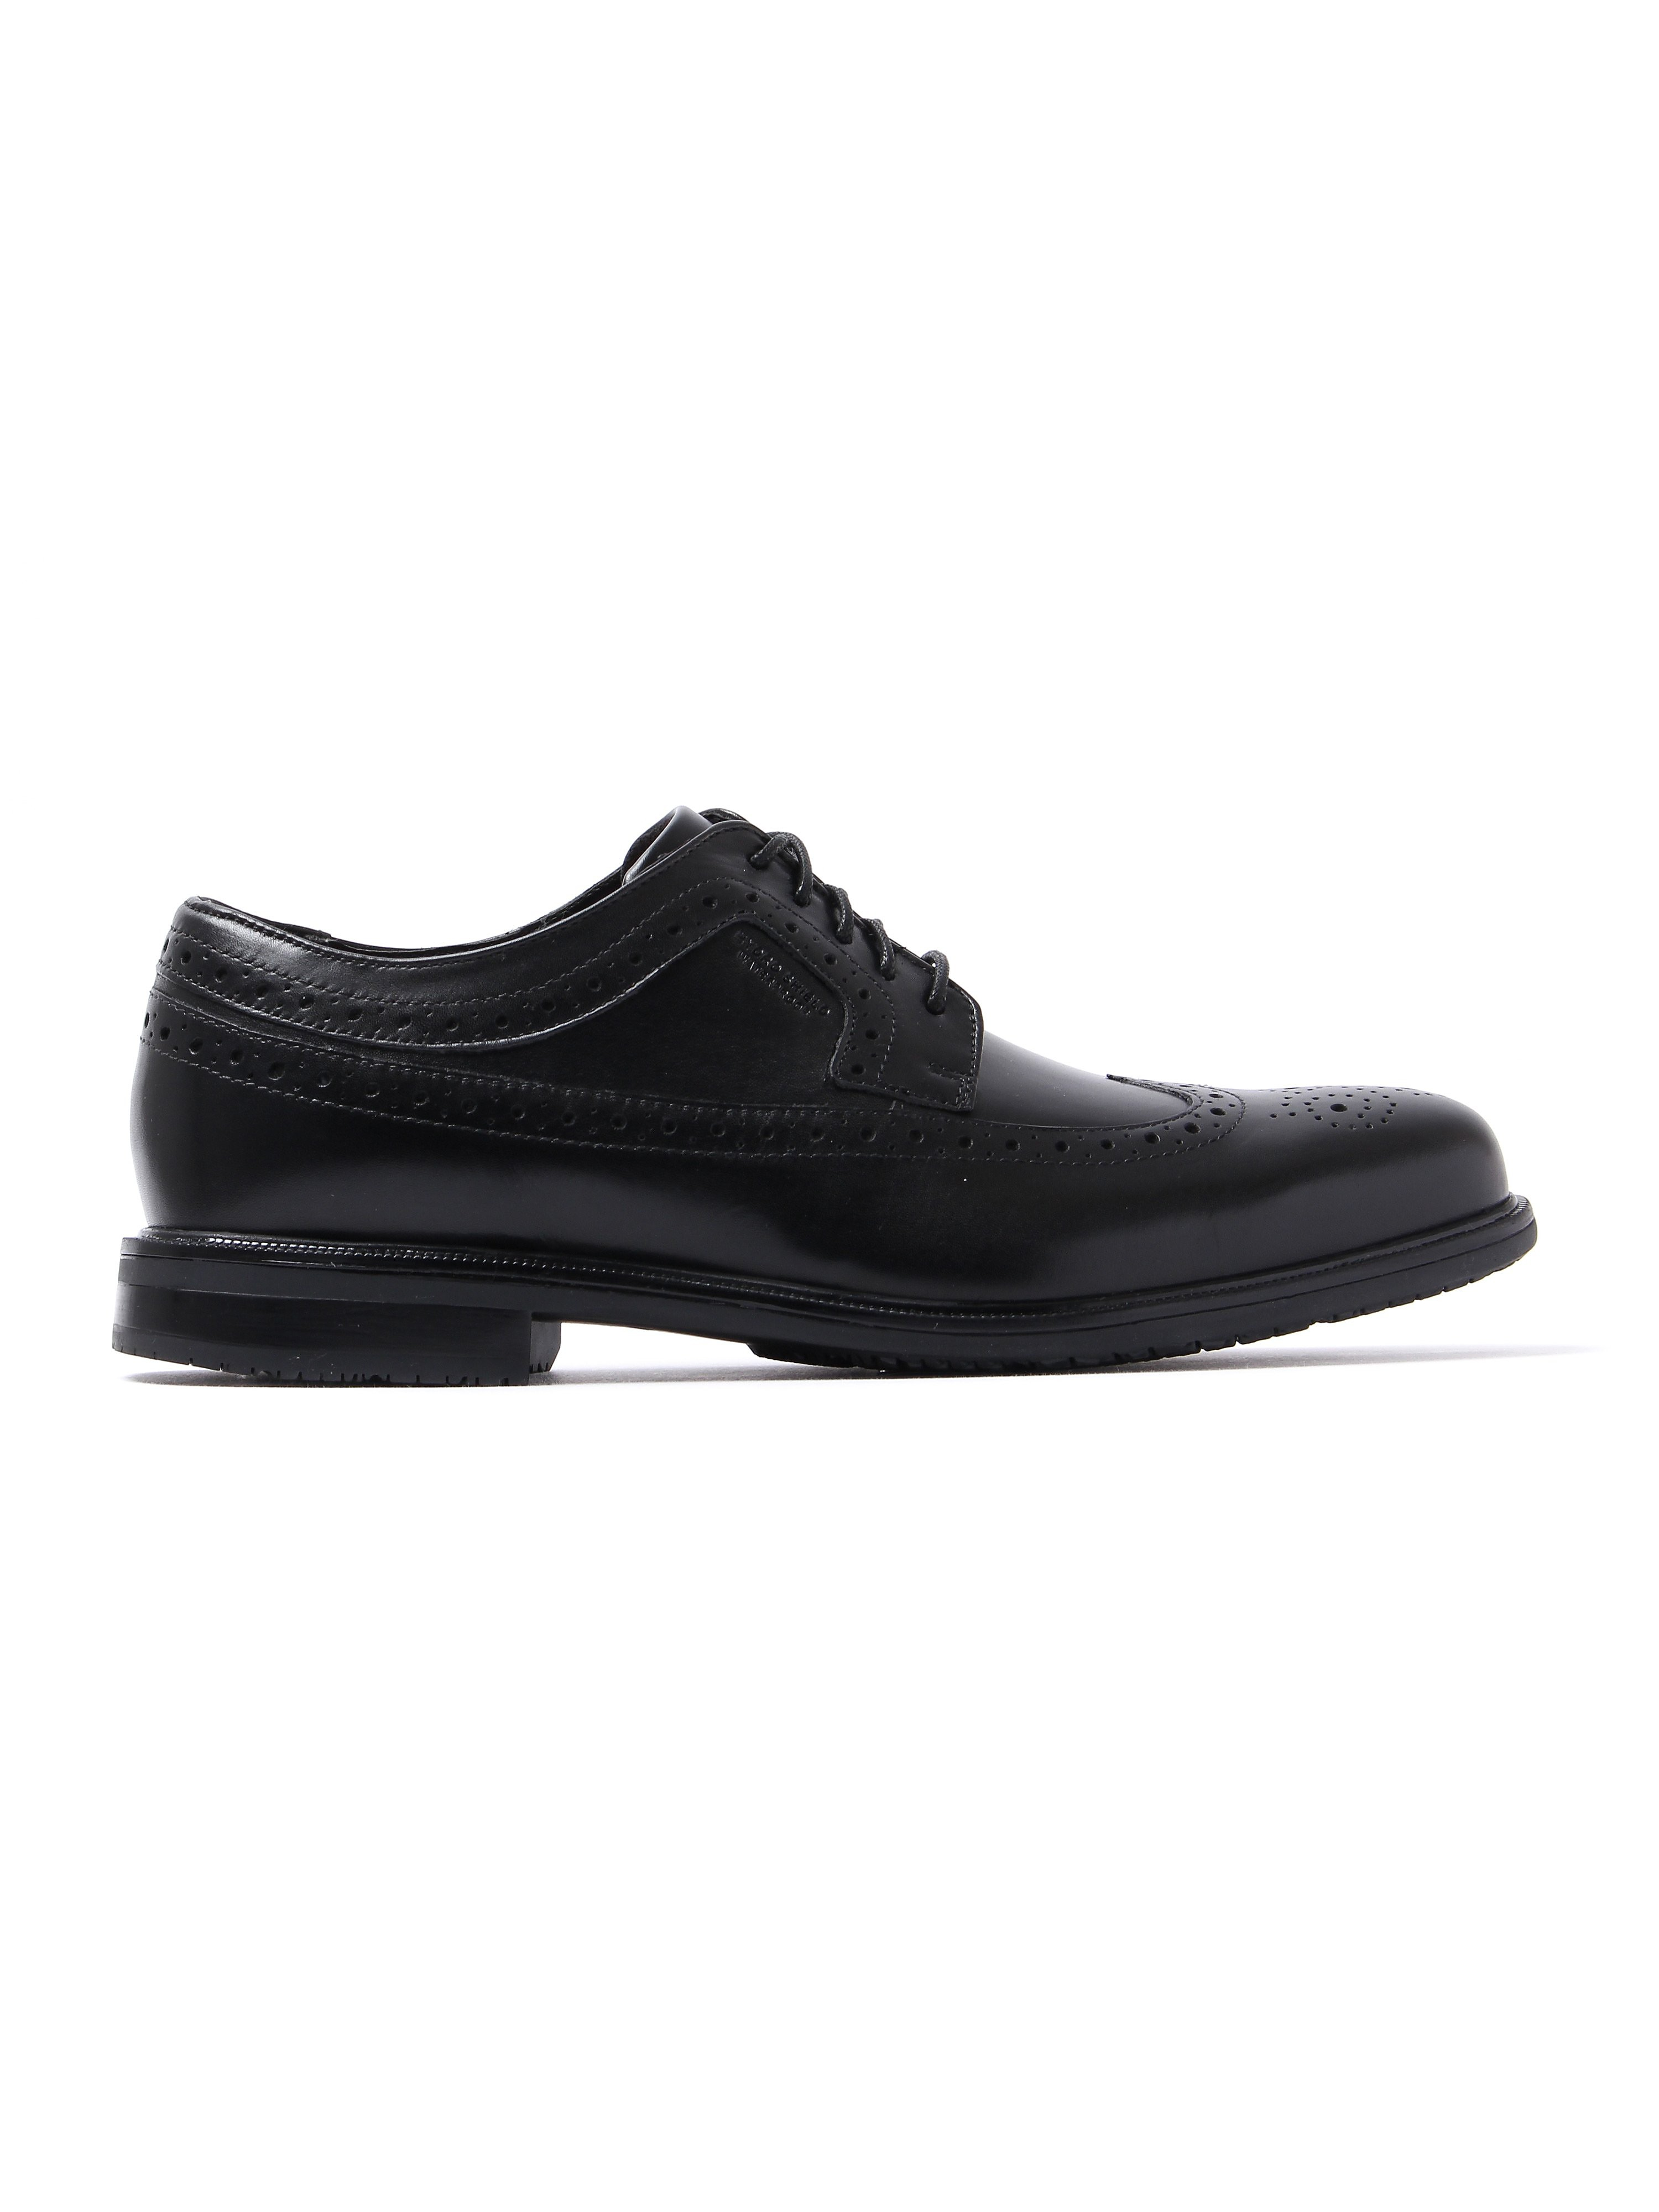 Rockport Men's Essential Detail II Wing Tip Leather Brogues - Black